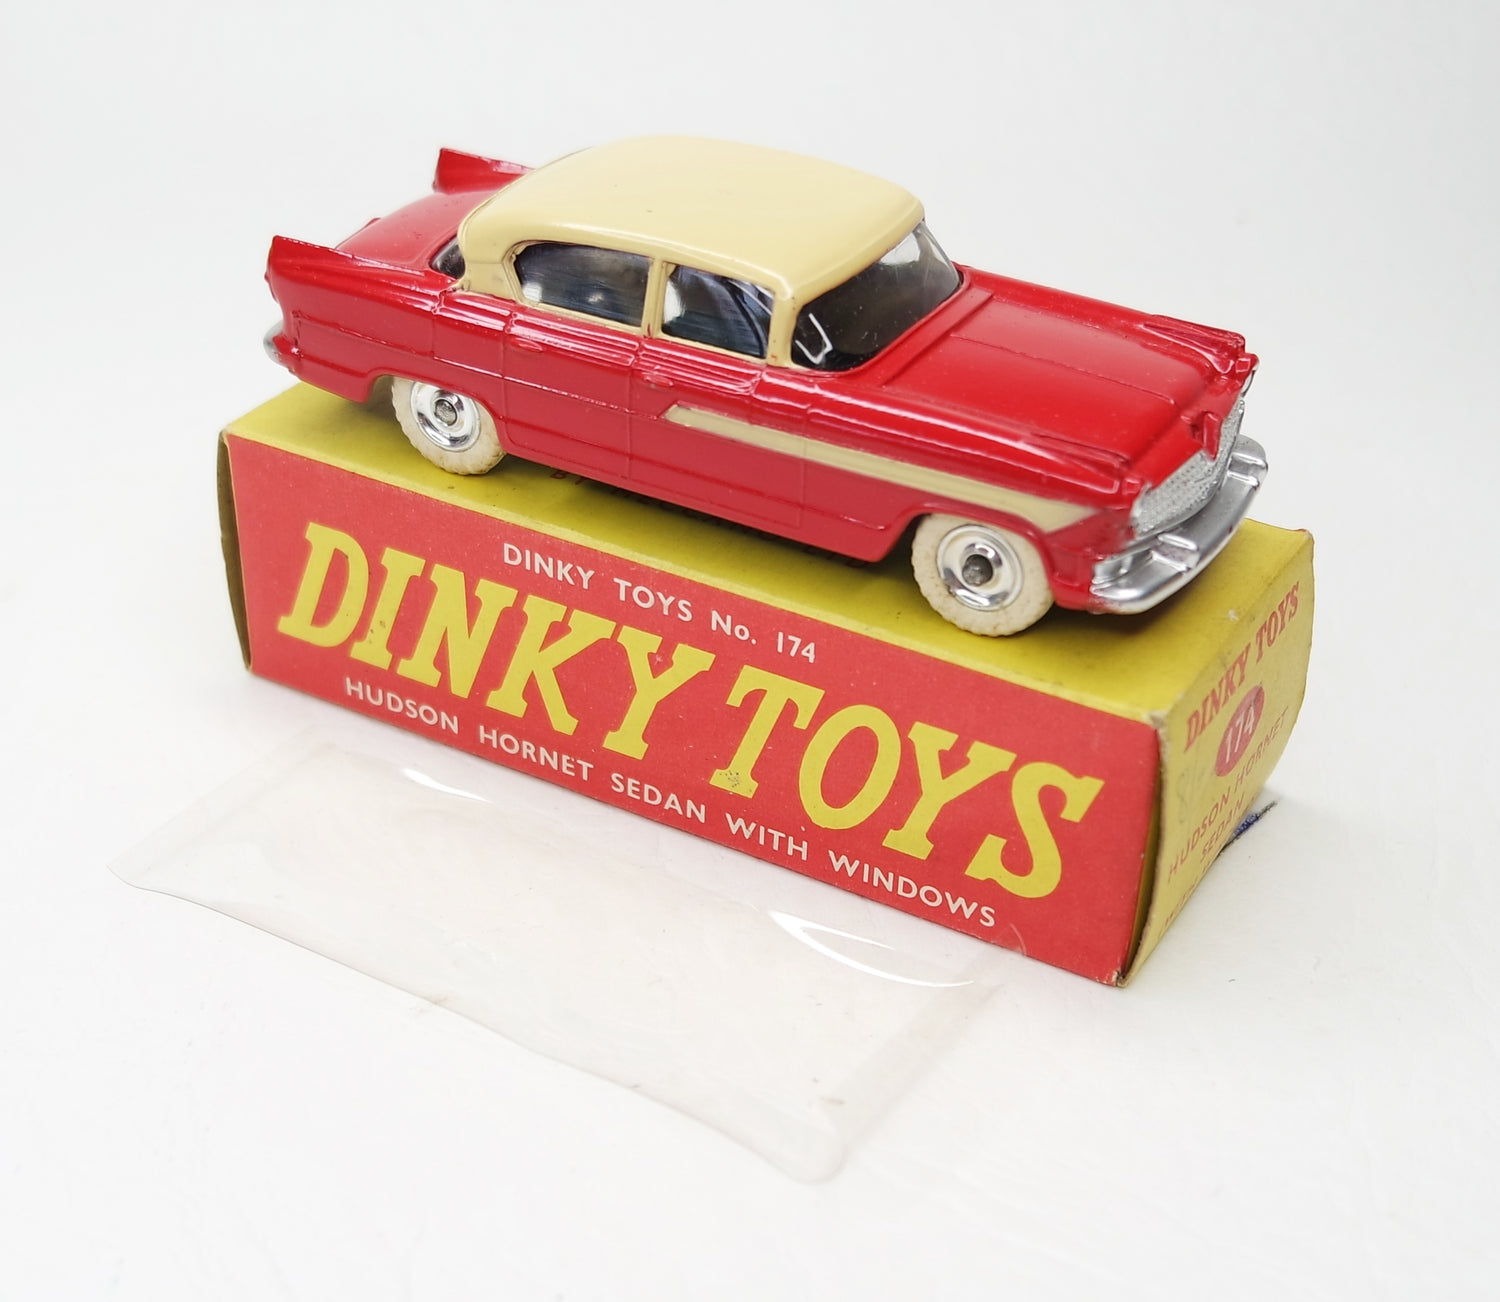 Dinky Toys 174 Hudson Hornet Virtually Mint/Boxed (C.T.C)